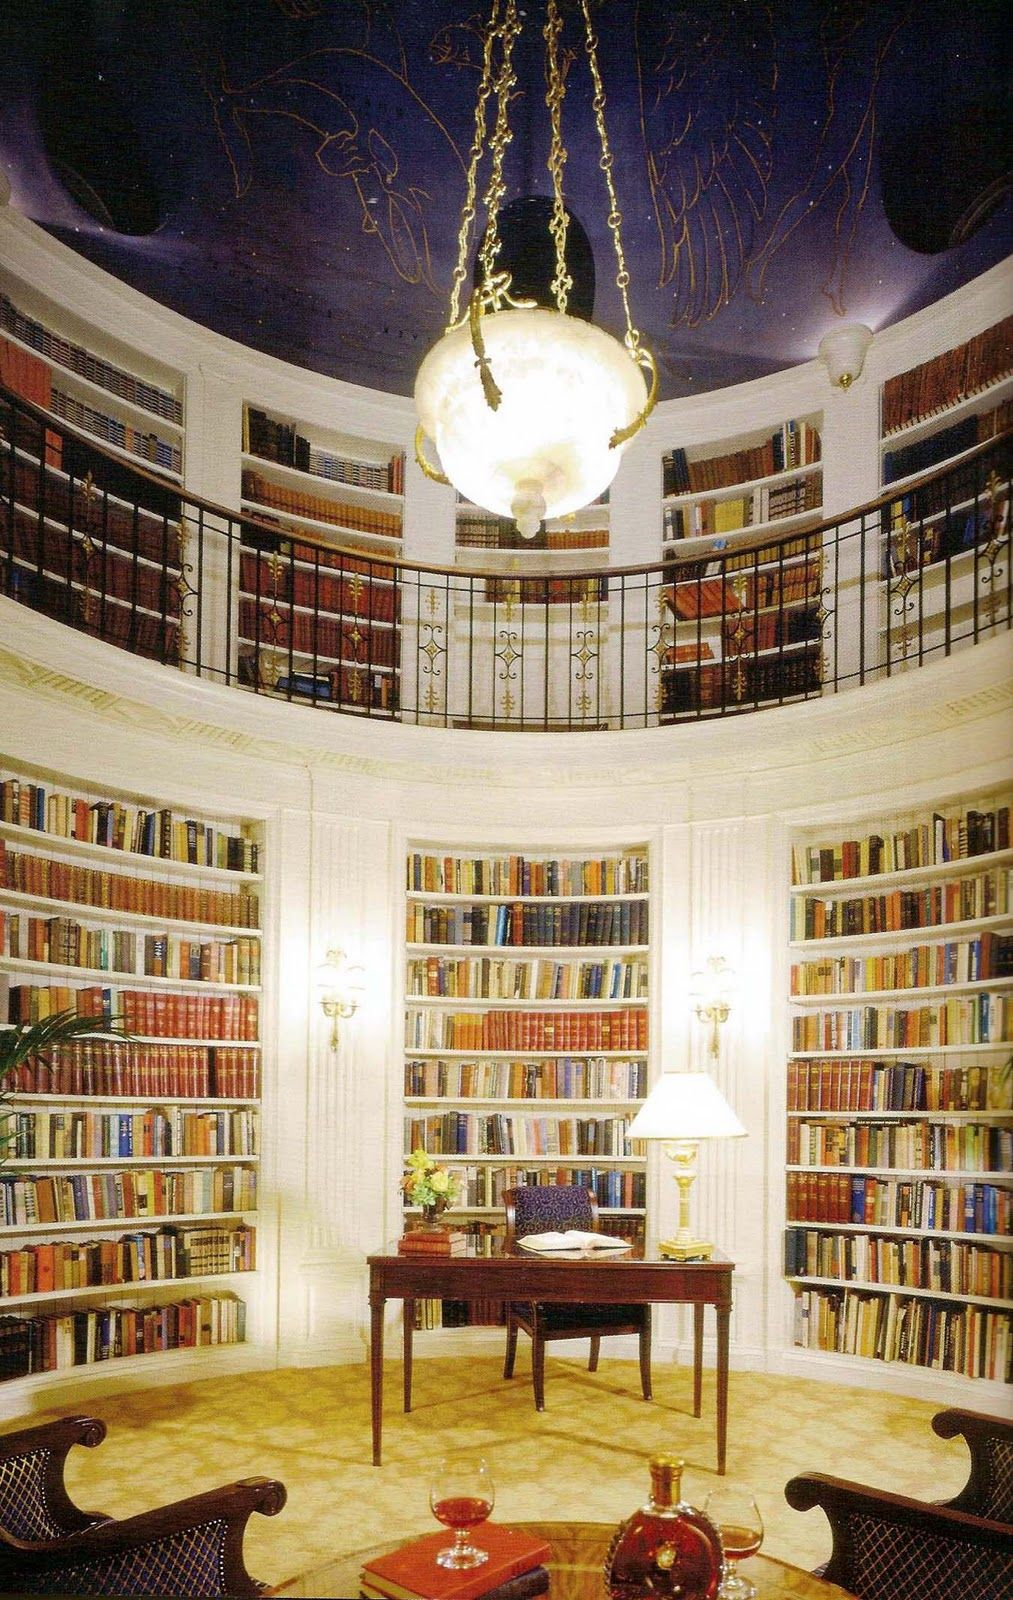 Library in the penthouse suite of the Fairmont Hotel in San Francisco   Picture of Elegance. Library in the penthouse suite of the Fairmont Hotel in San